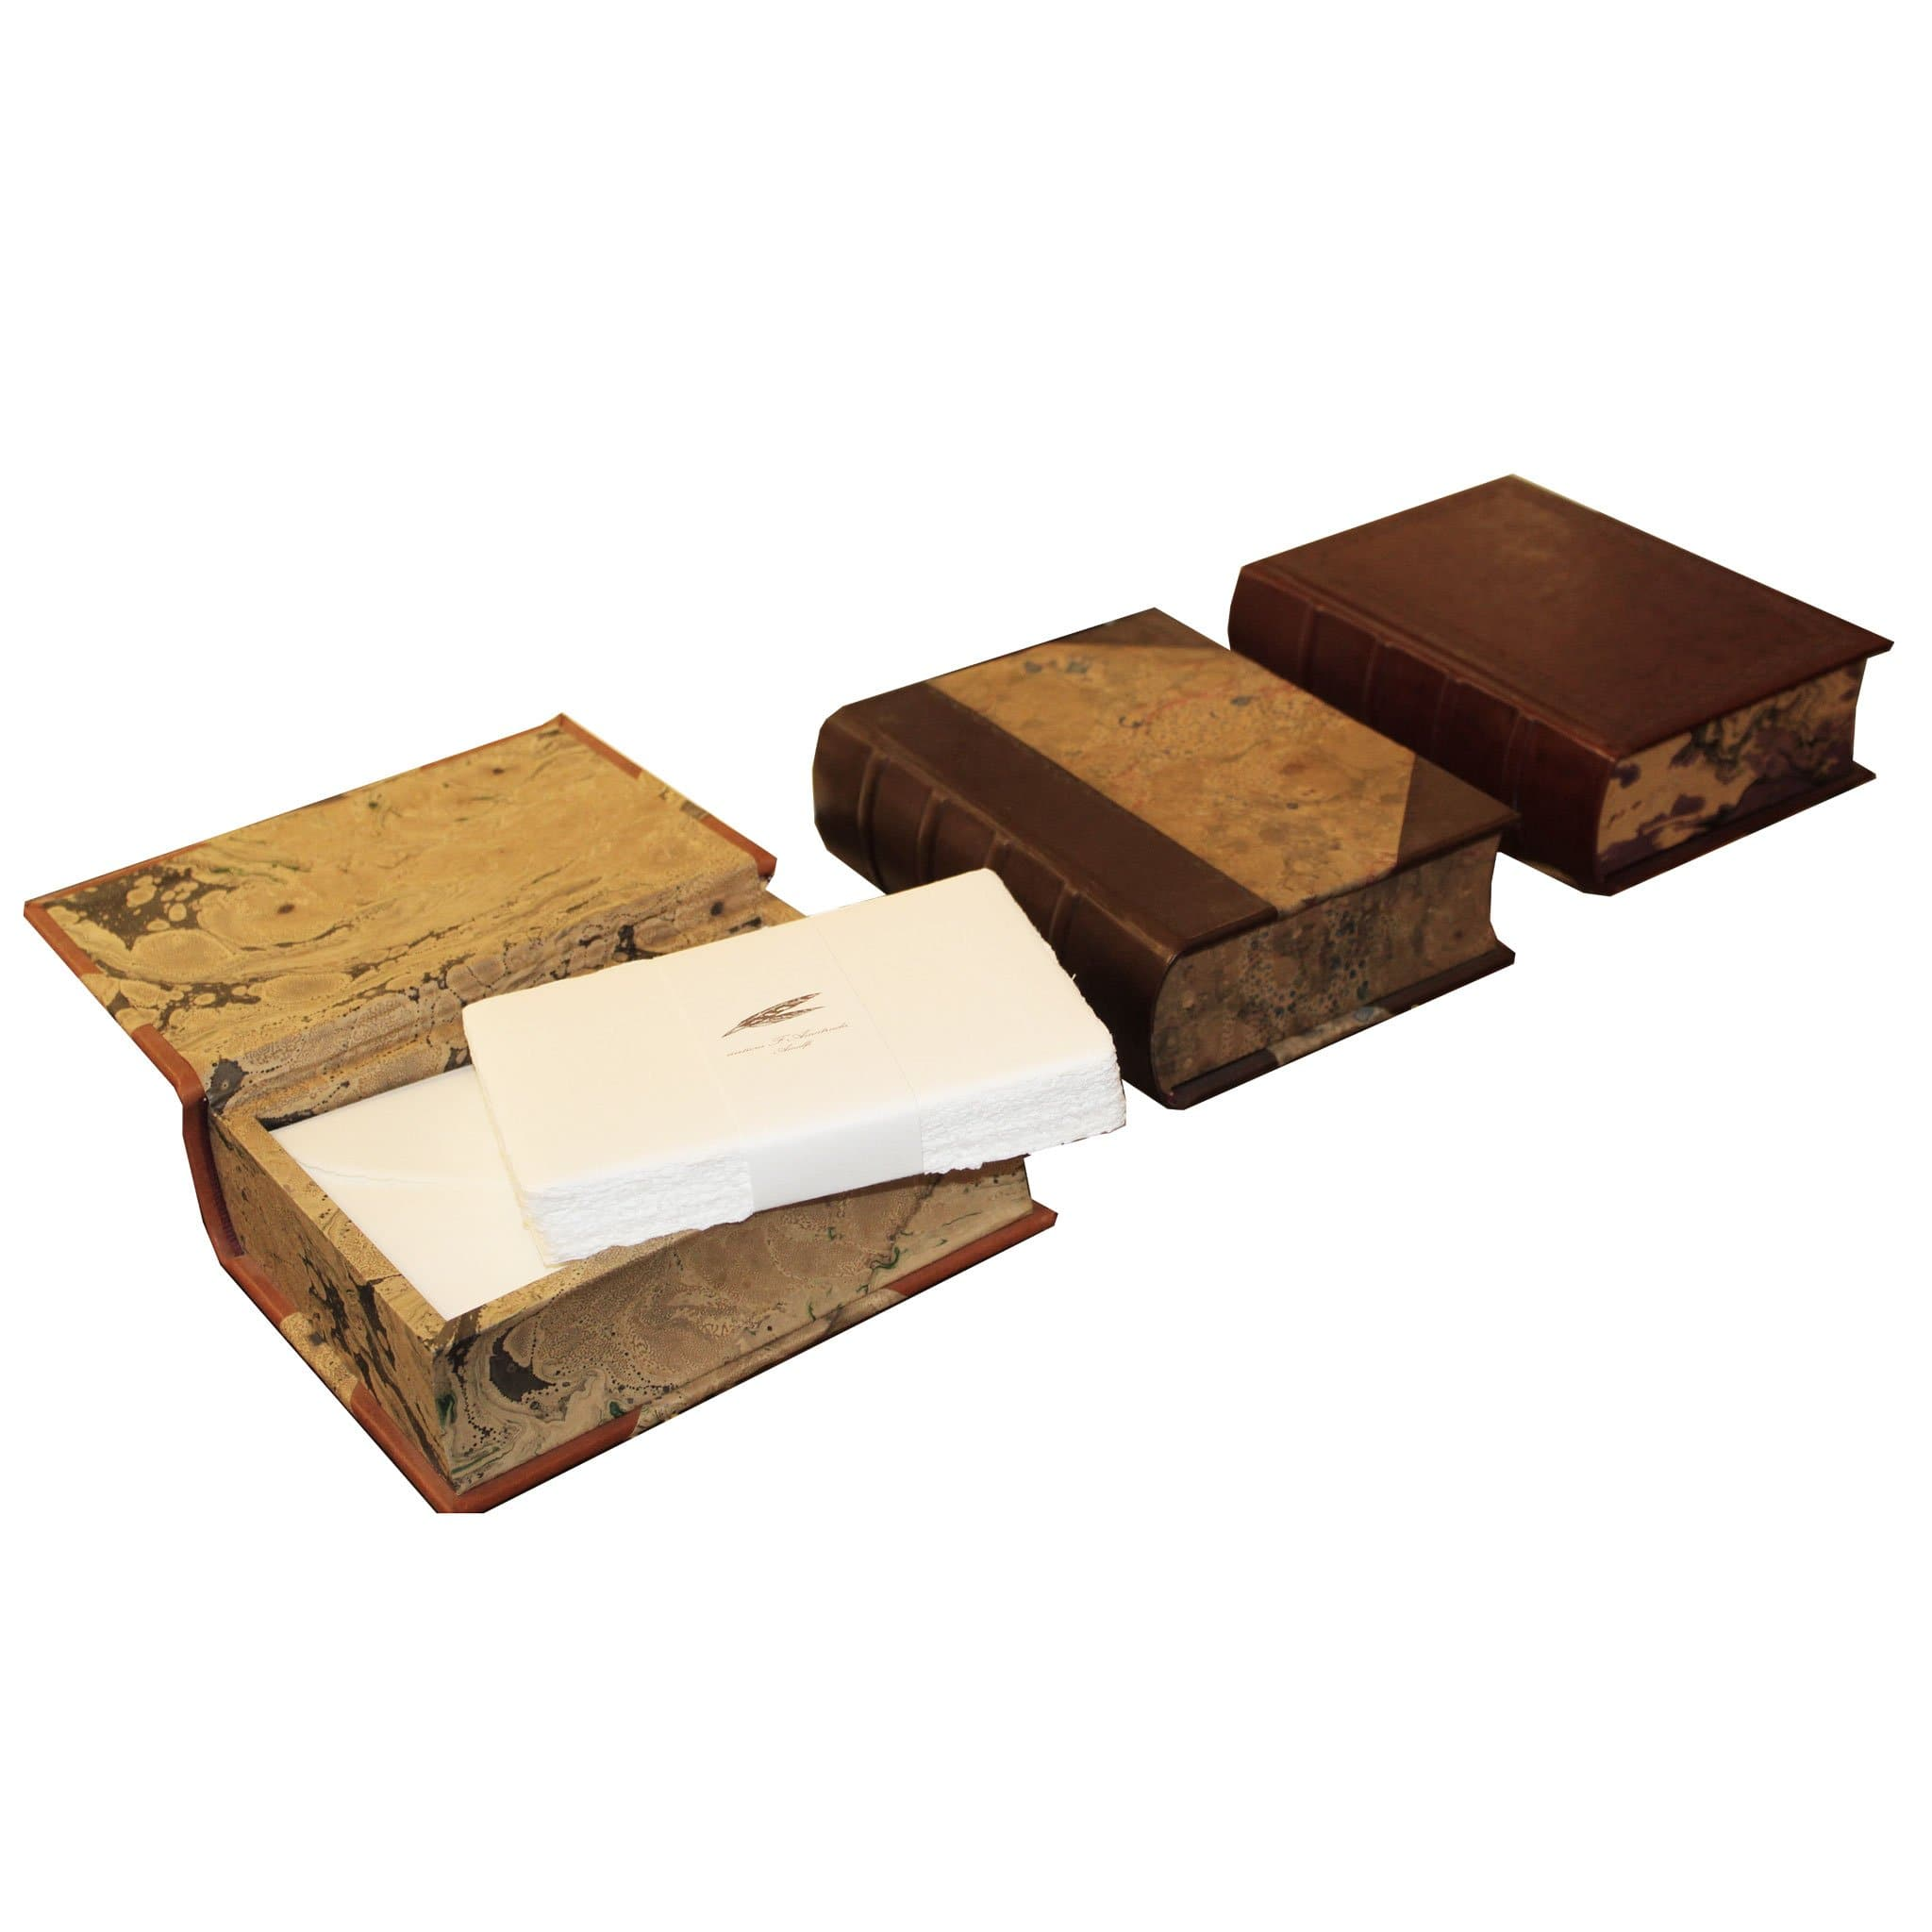 Book shaped leather storage box and Amalfi Handmade paper envelopes (50pc.) and letter paper (50pc.). [Free personalization - Choice of leather finish]